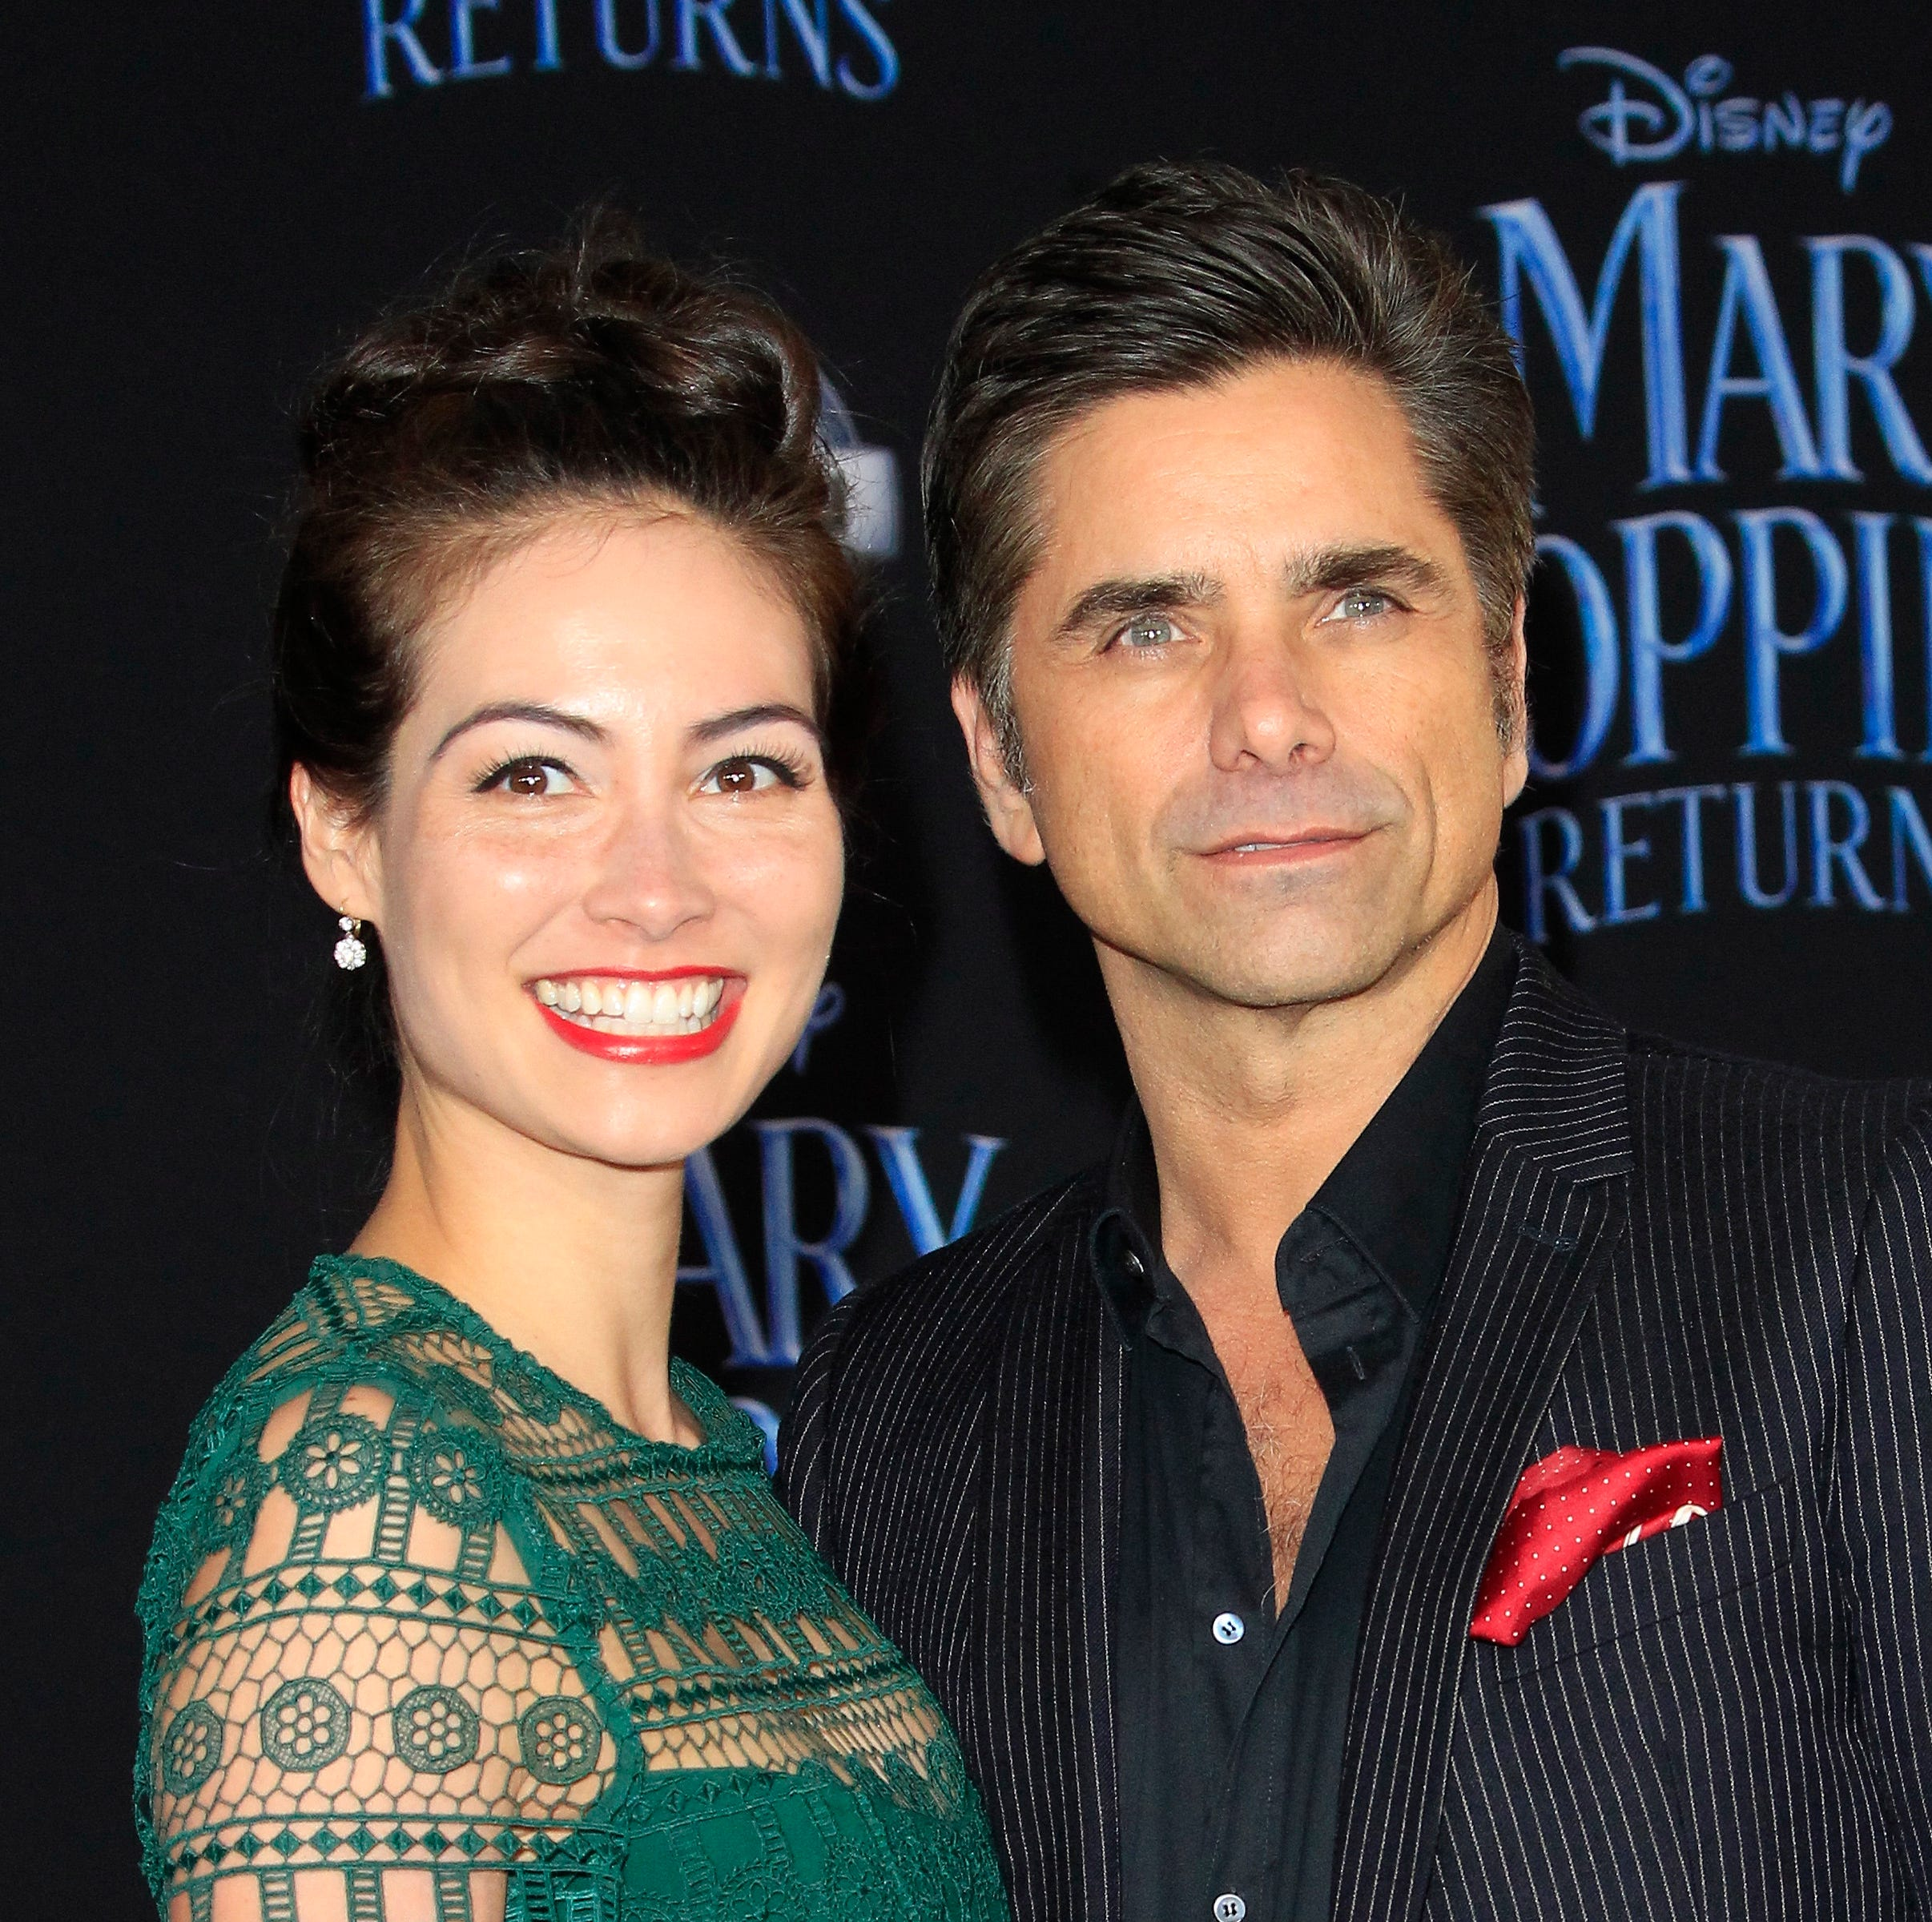 John Stamos and his wife Caitlin McHugh arriving for the premiere of Disney's 'Mary Poppins Returns' in Hollywood, Los Angeles, California, USA 29 November 2018.